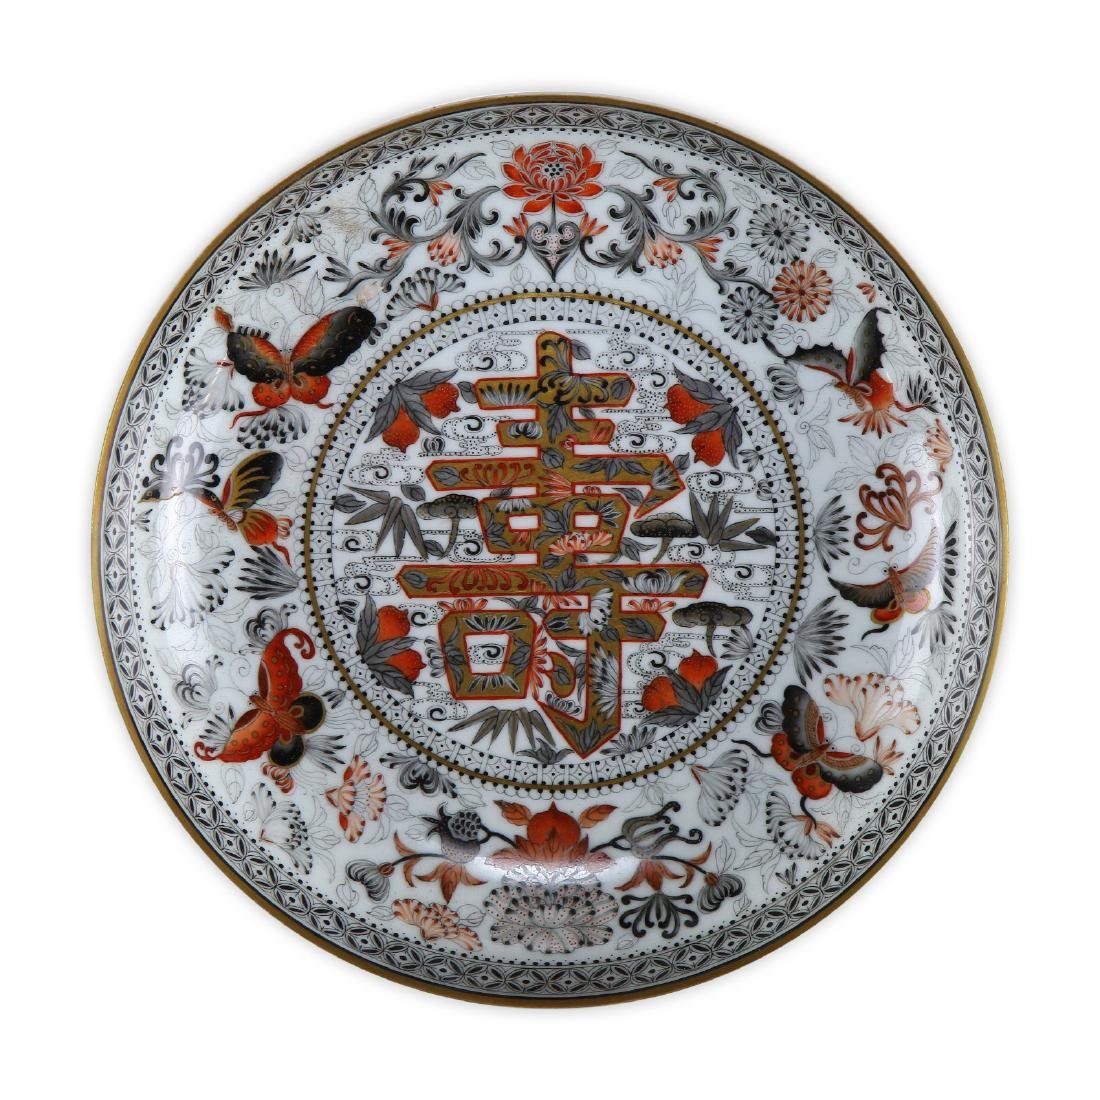 A CHINESE GRISAILLE GLAZED PORCELAIN PLATE